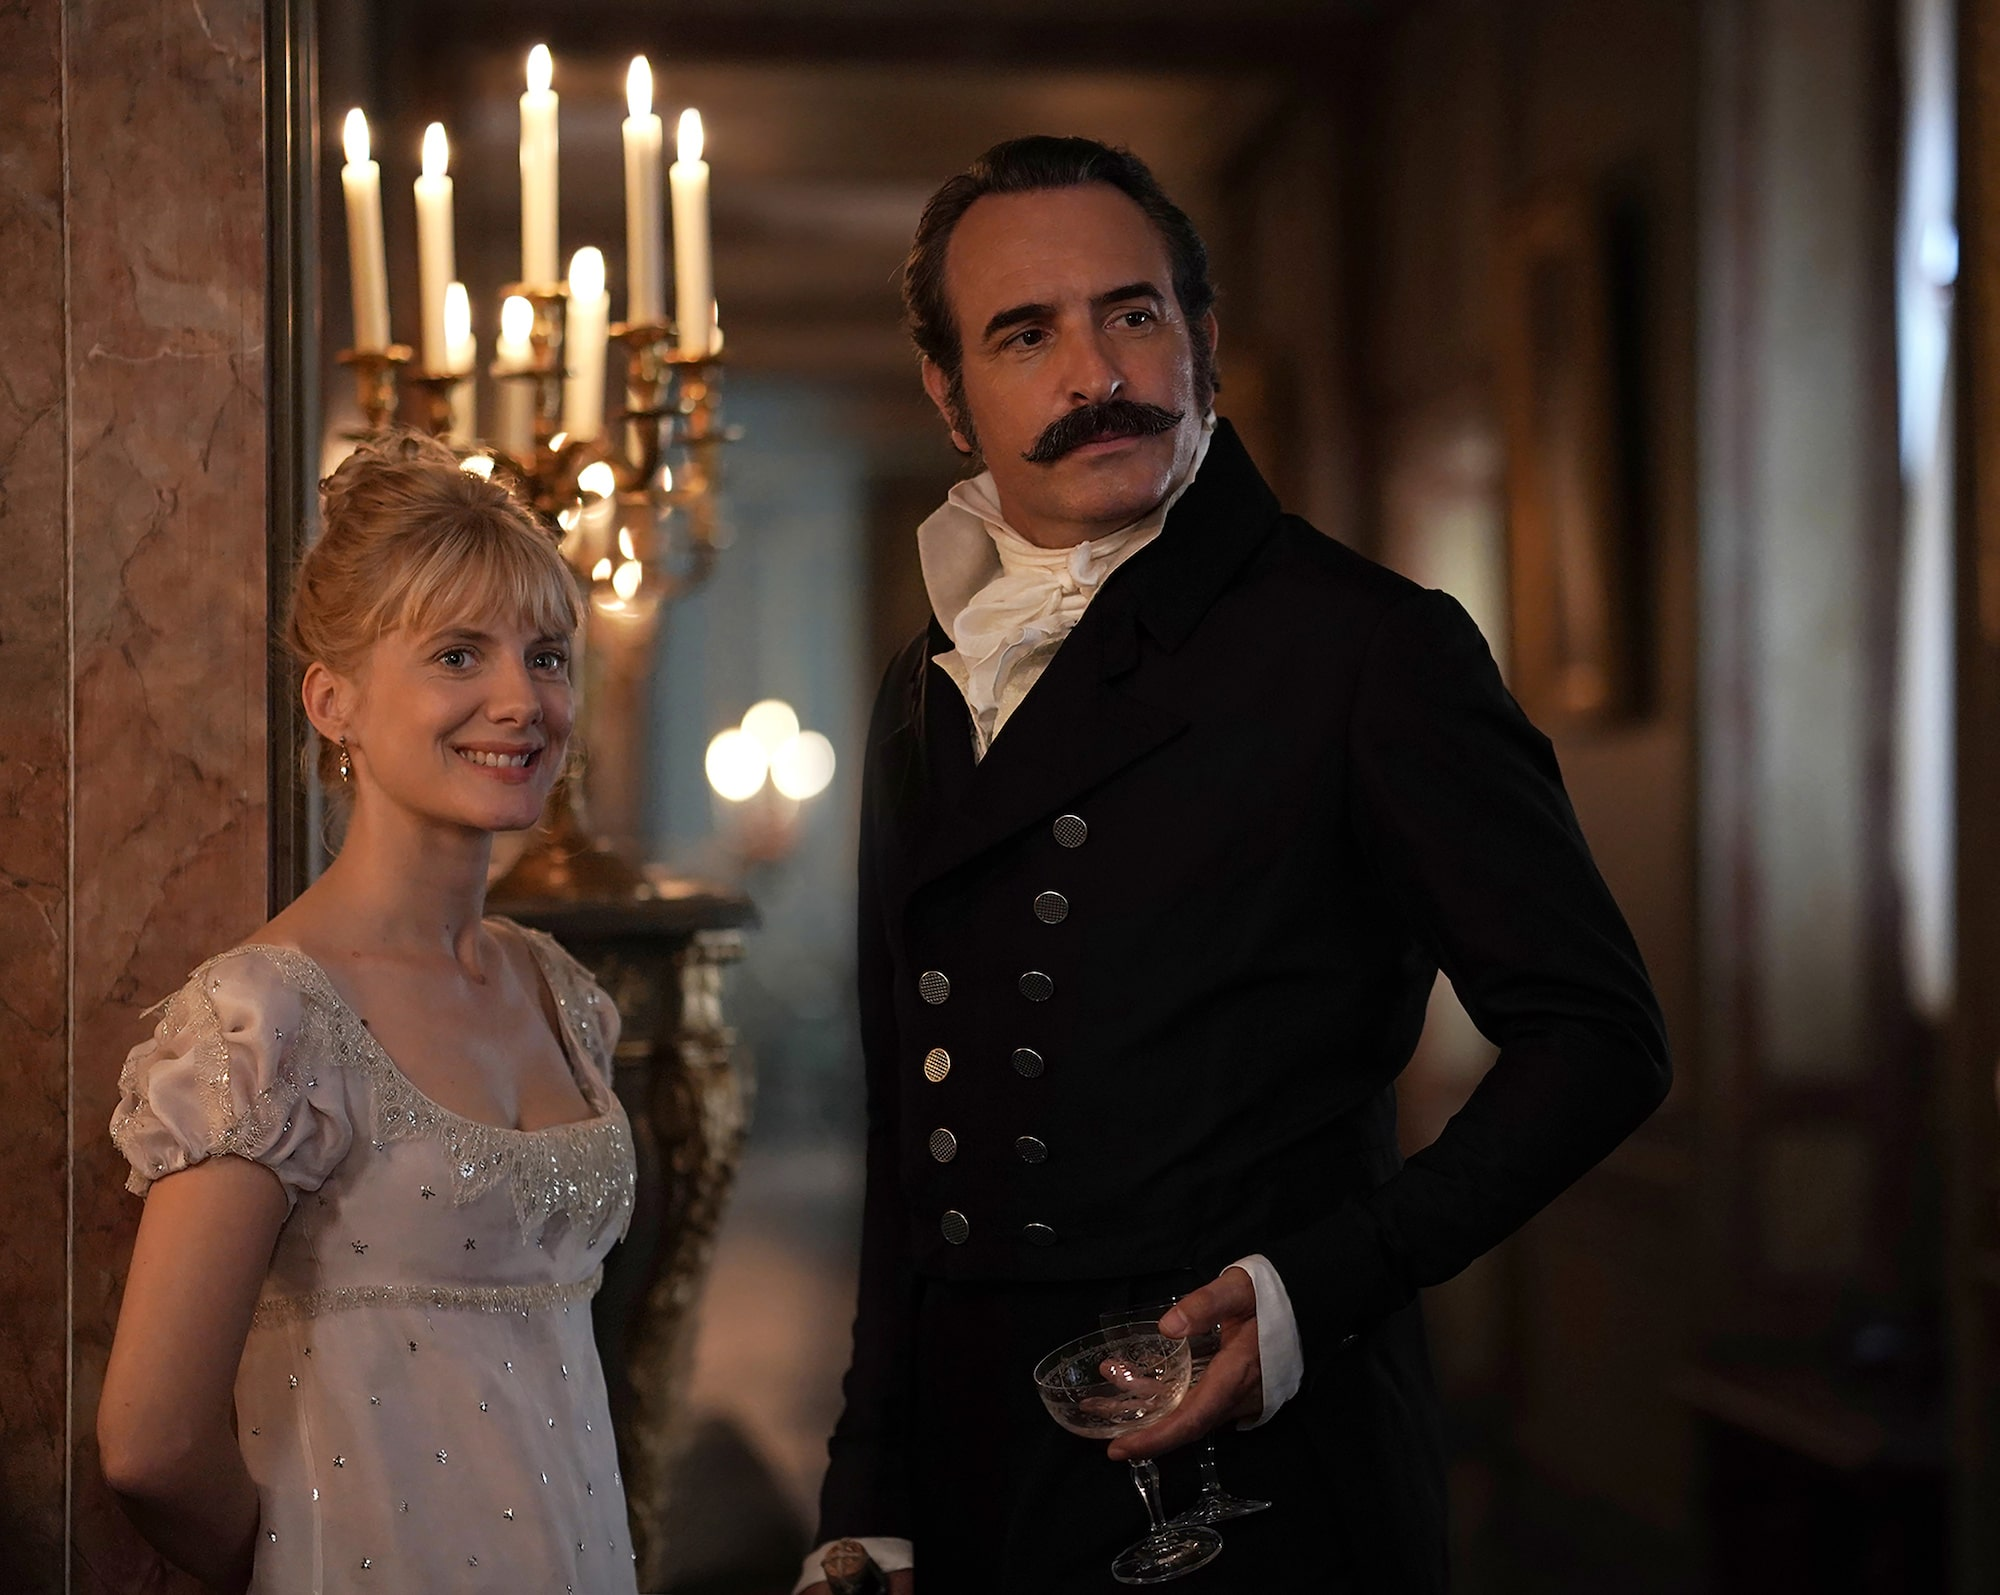 Christophe Brachet Sony Alpha 9 jean dujardin and melanie laurent dressed in formal costume in front of some candles